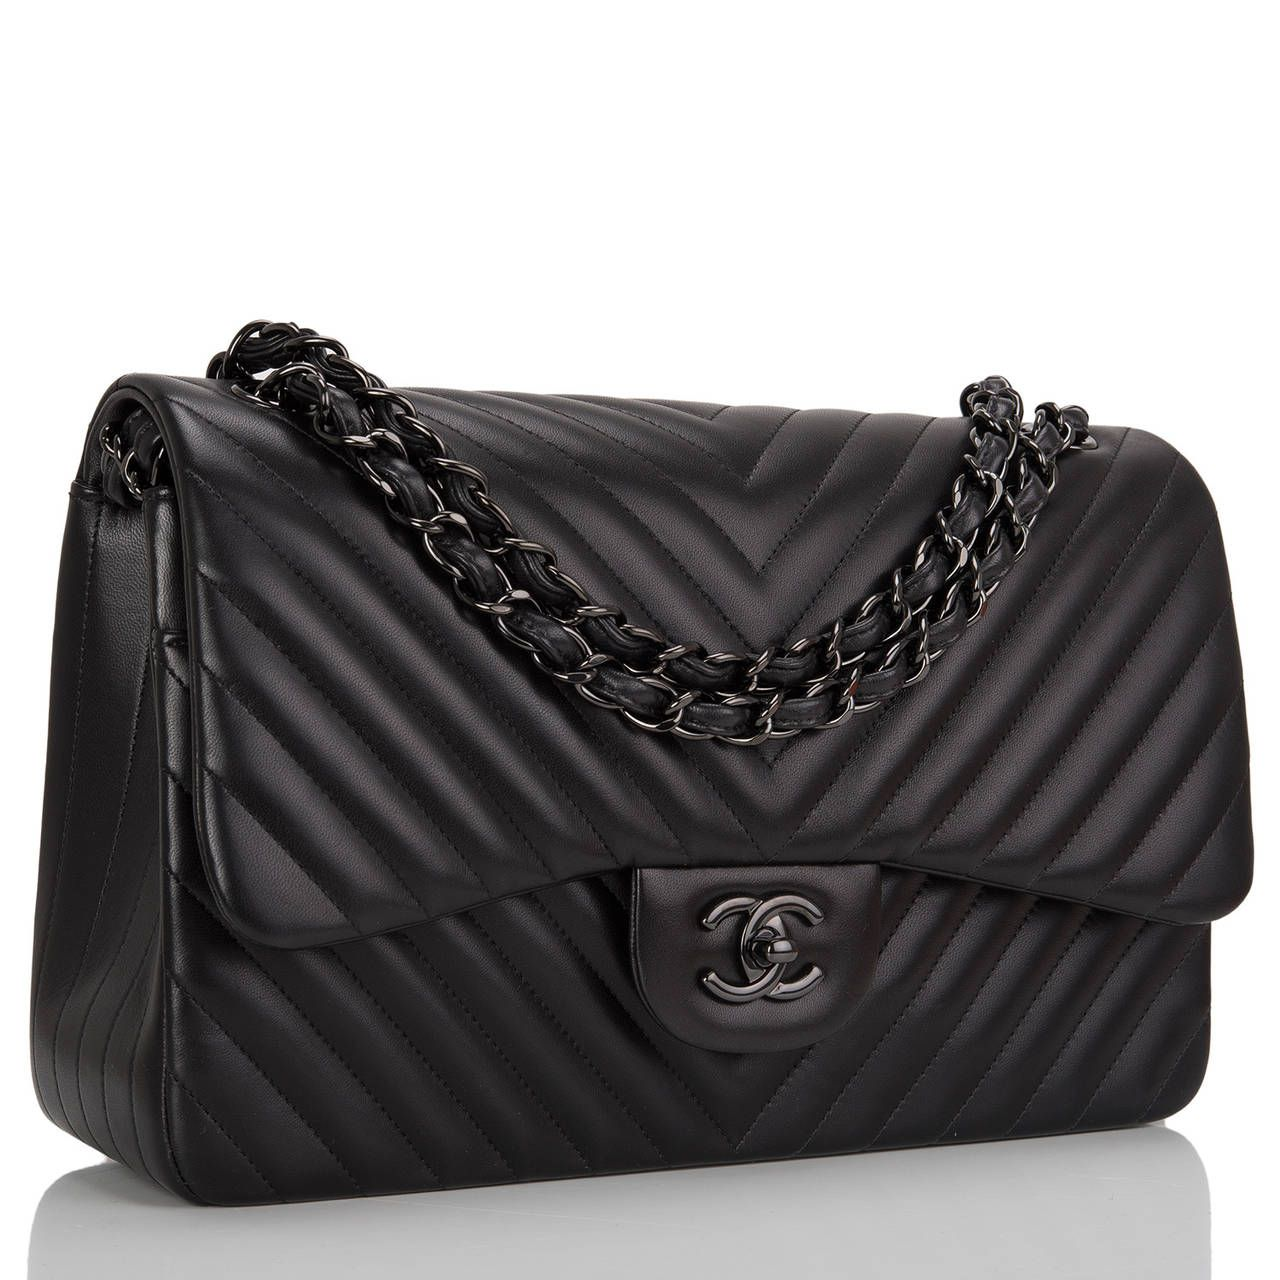 d1b7317f5f Chanel So Black Chevron Jumbo Double Flap Bag in 2019 | Purses ...